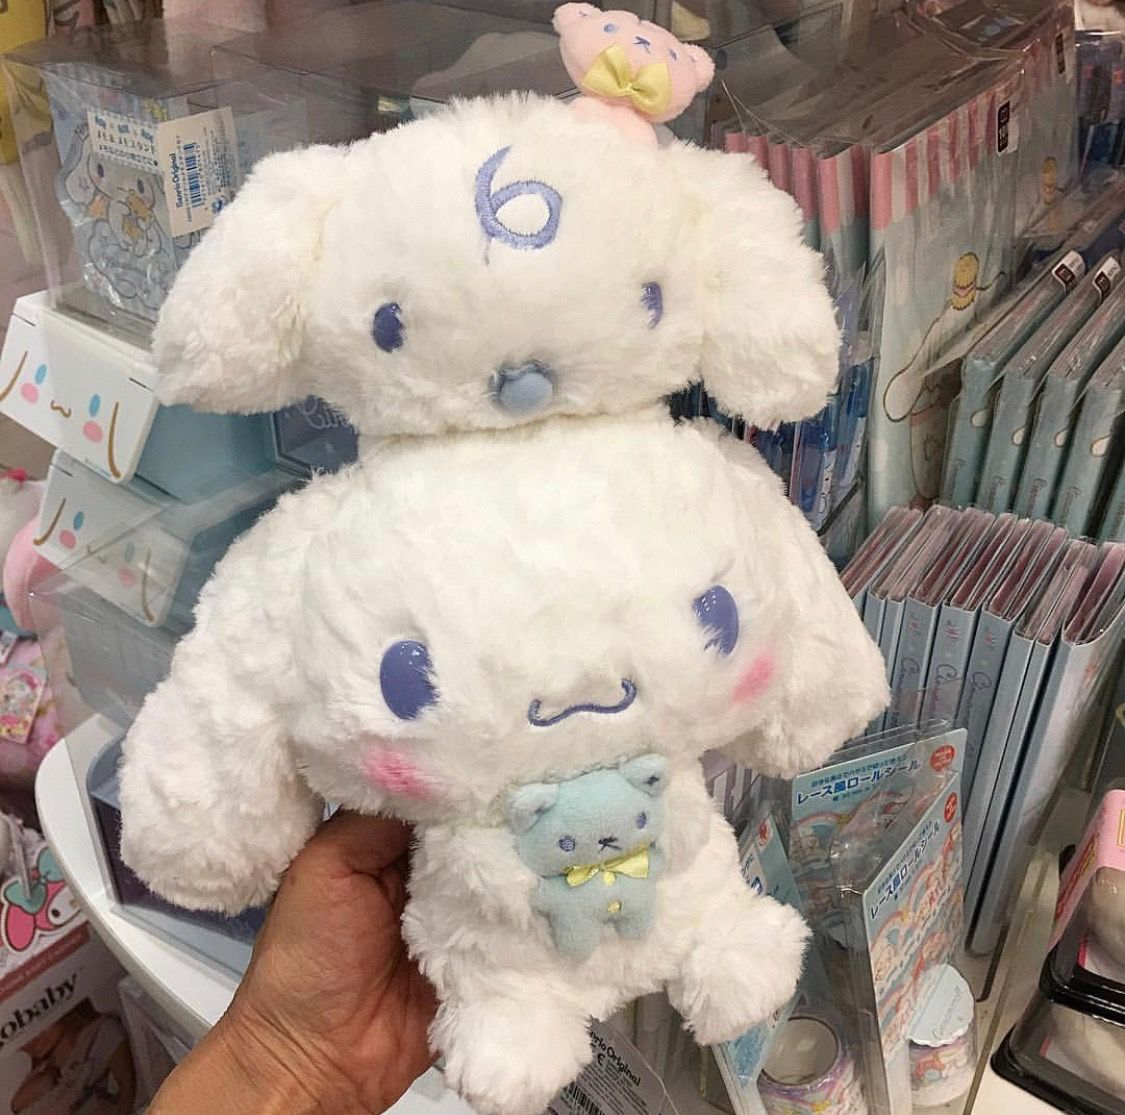 Cinnamoroll & Milk plushes (^з^)☆ soft cuddly and